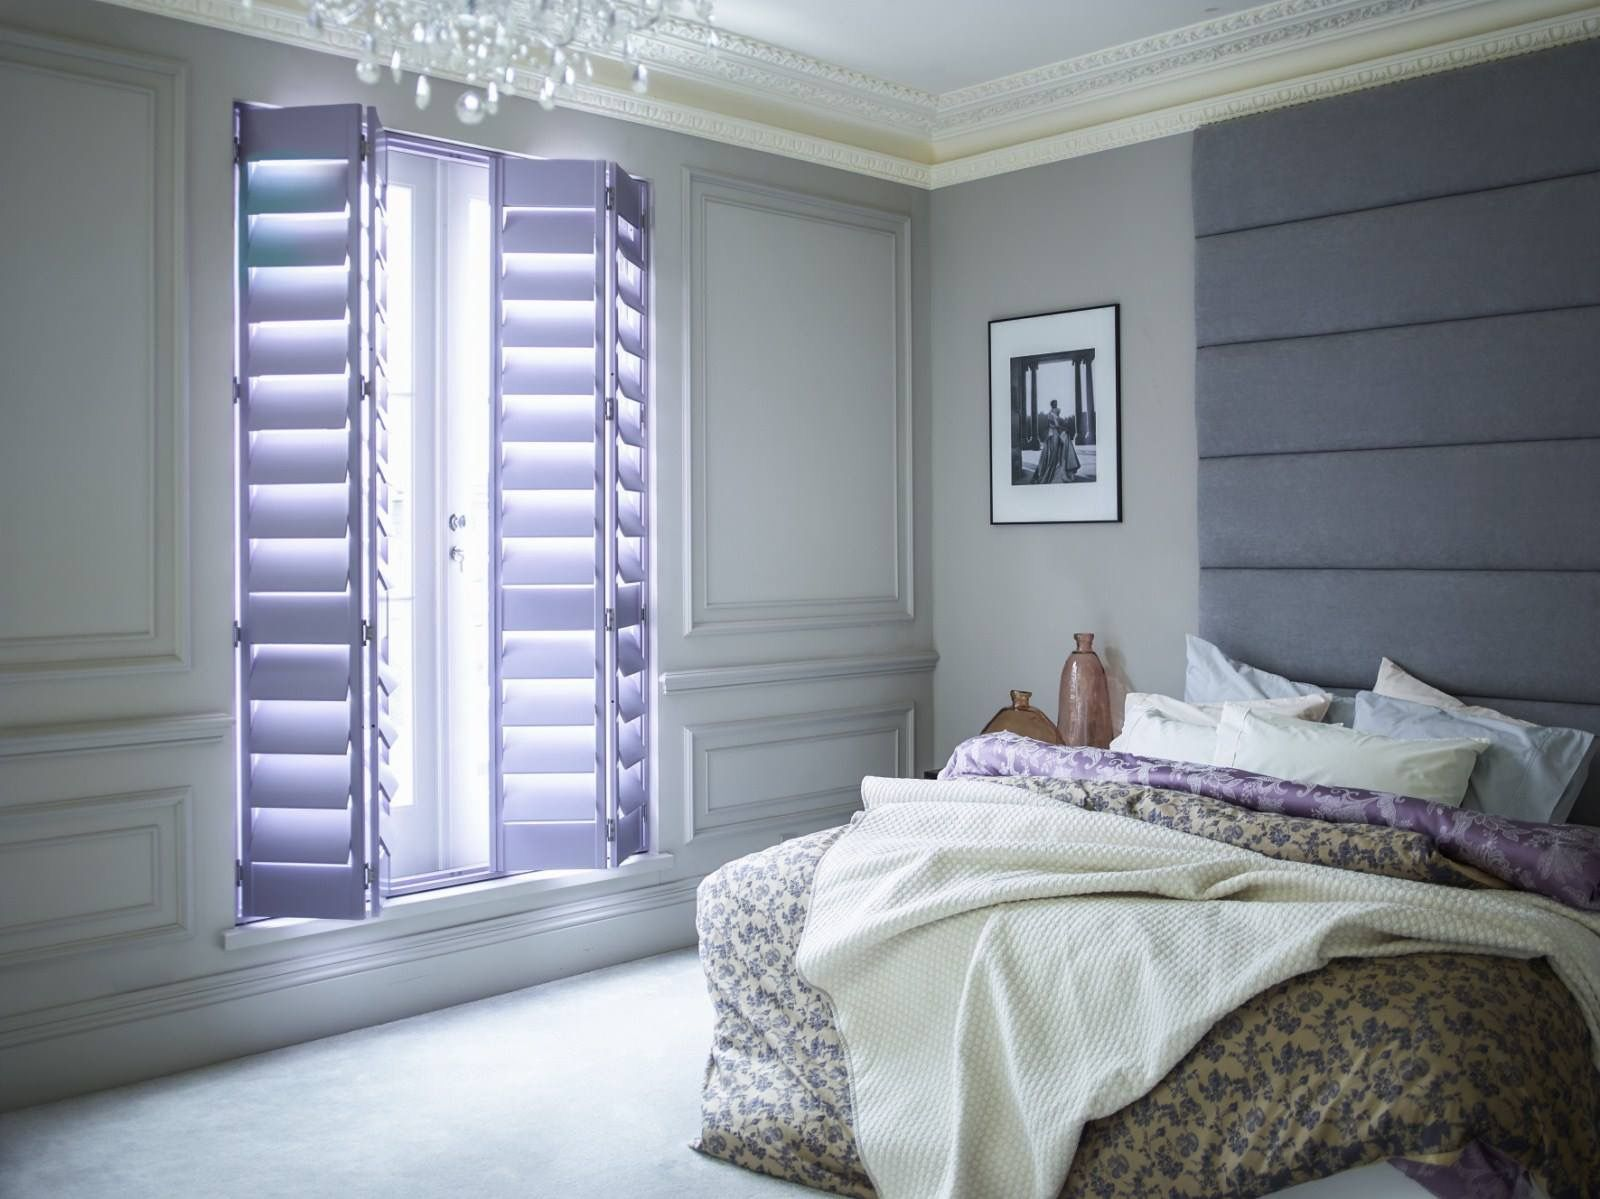 Pin by www.coolshutters.co.uk on Full Height Shutters